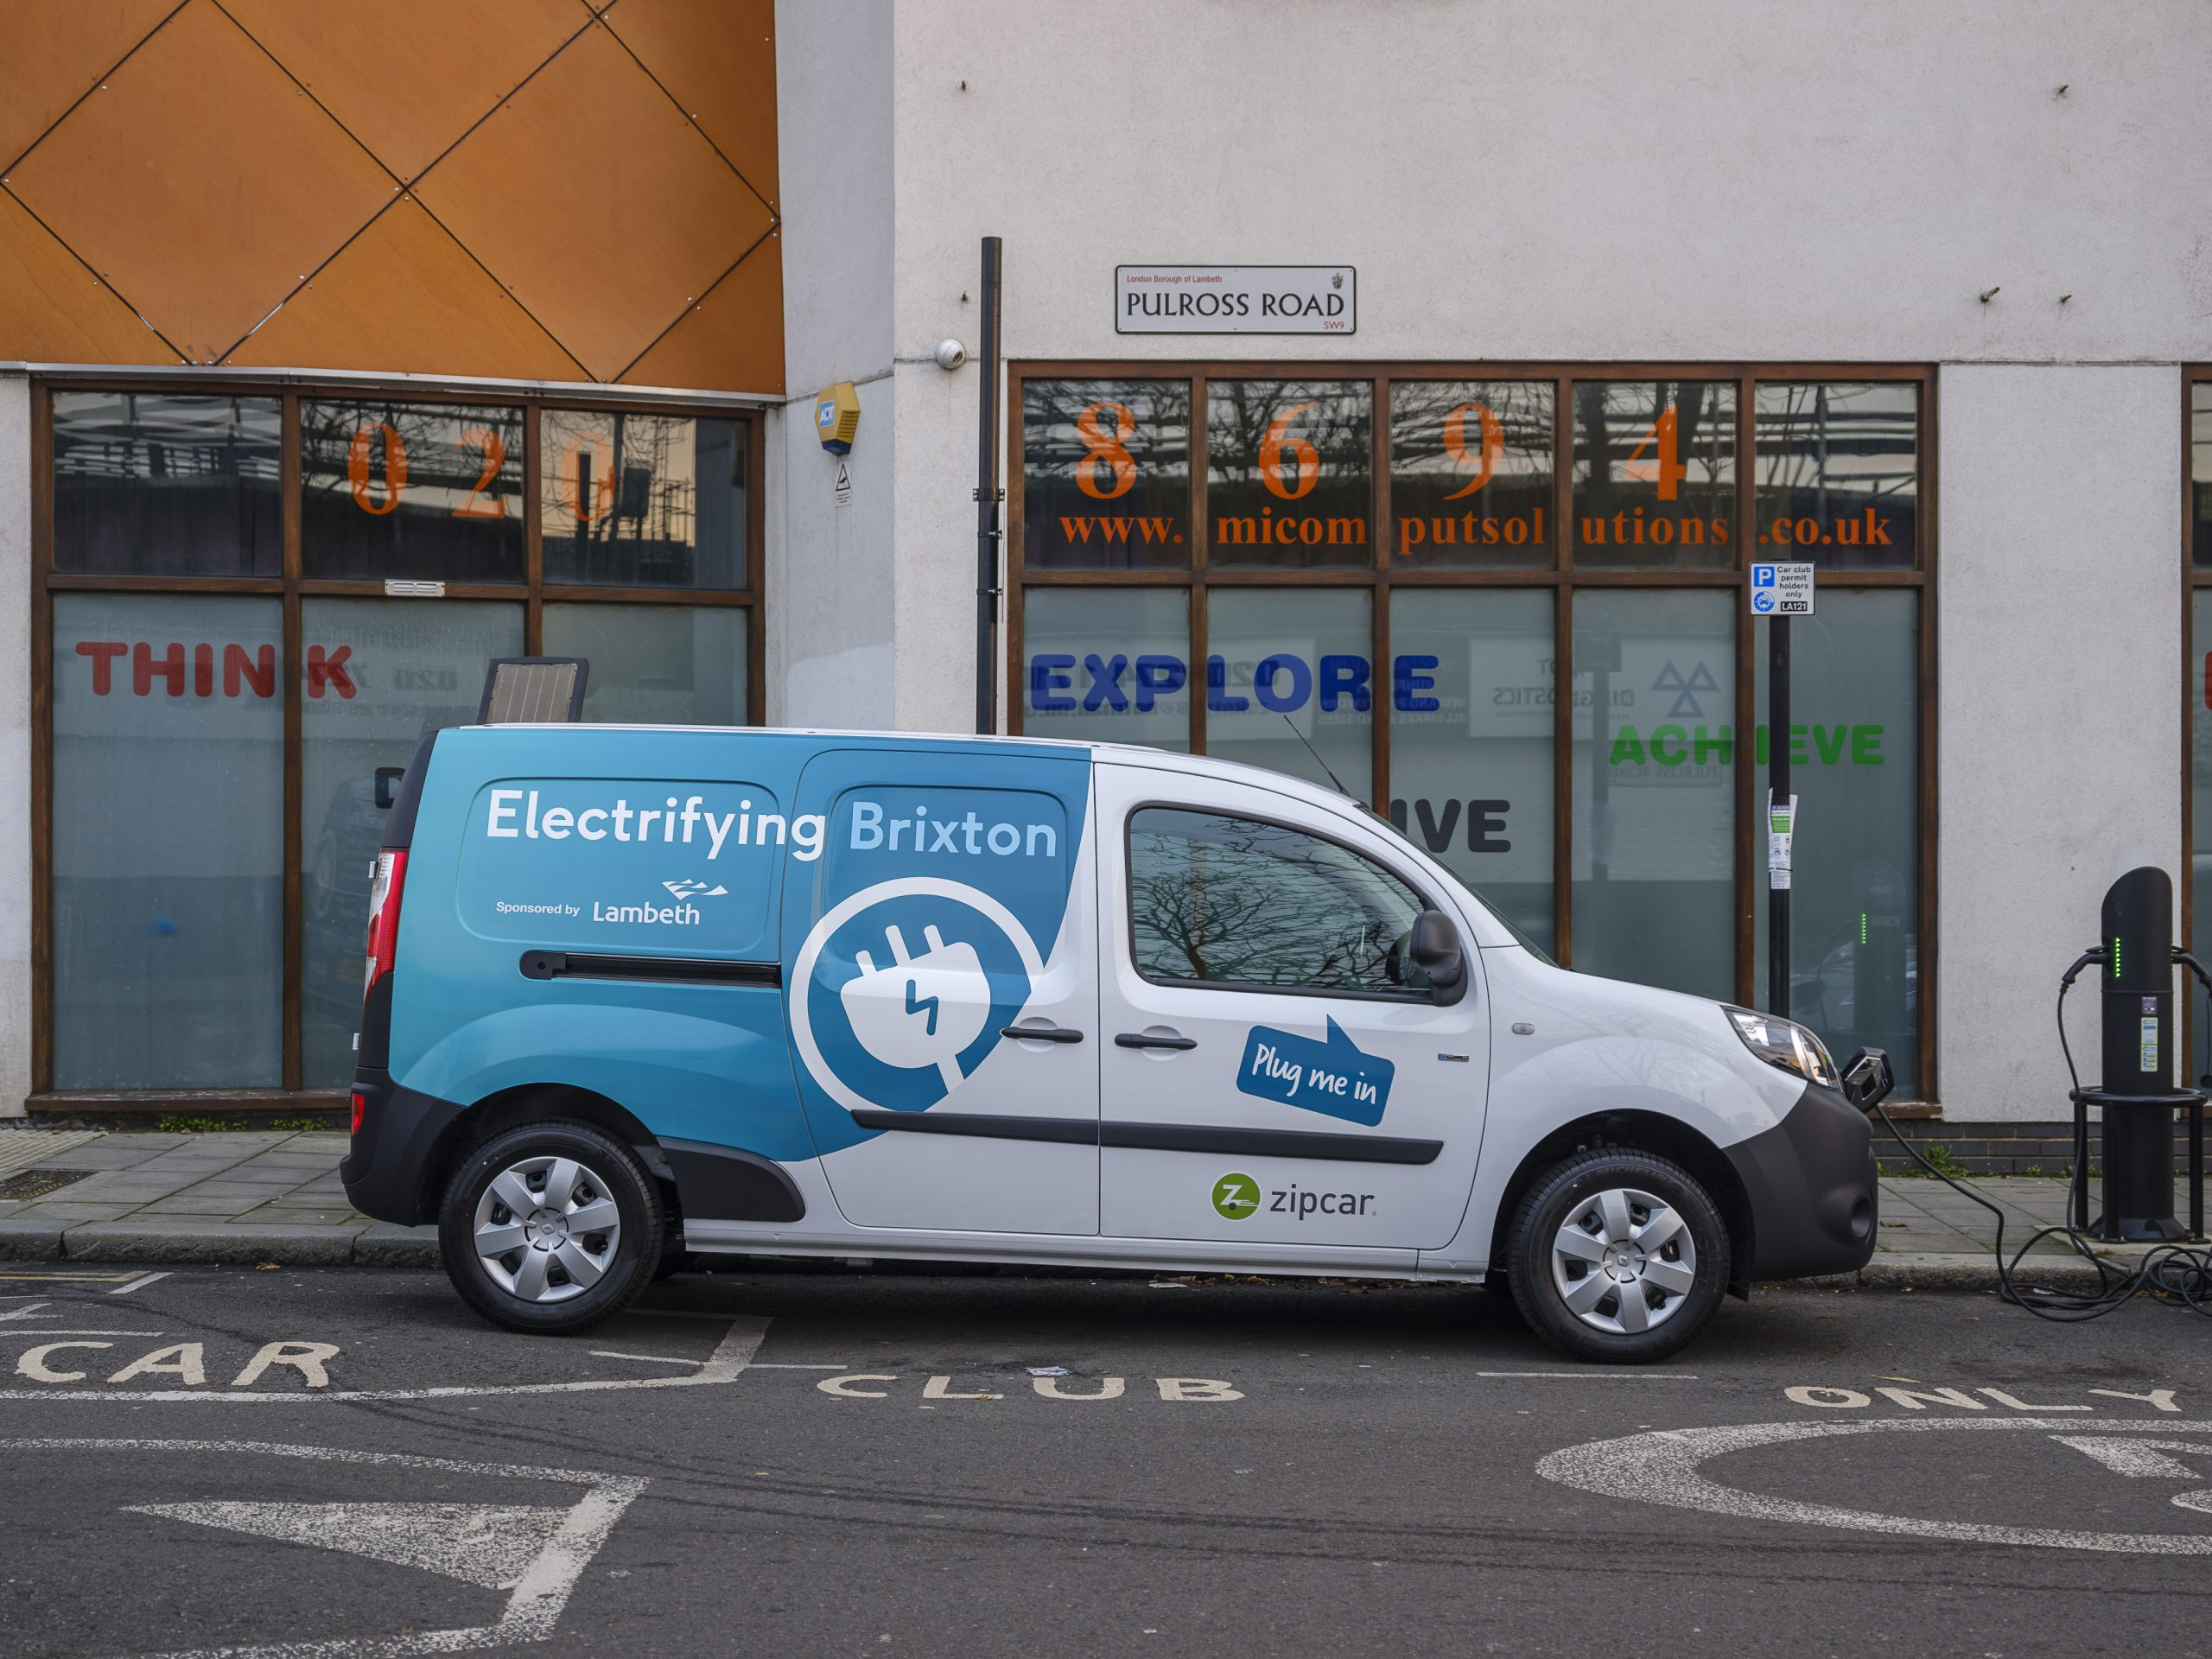 London shared business e-van scheme set to launch in Brixton